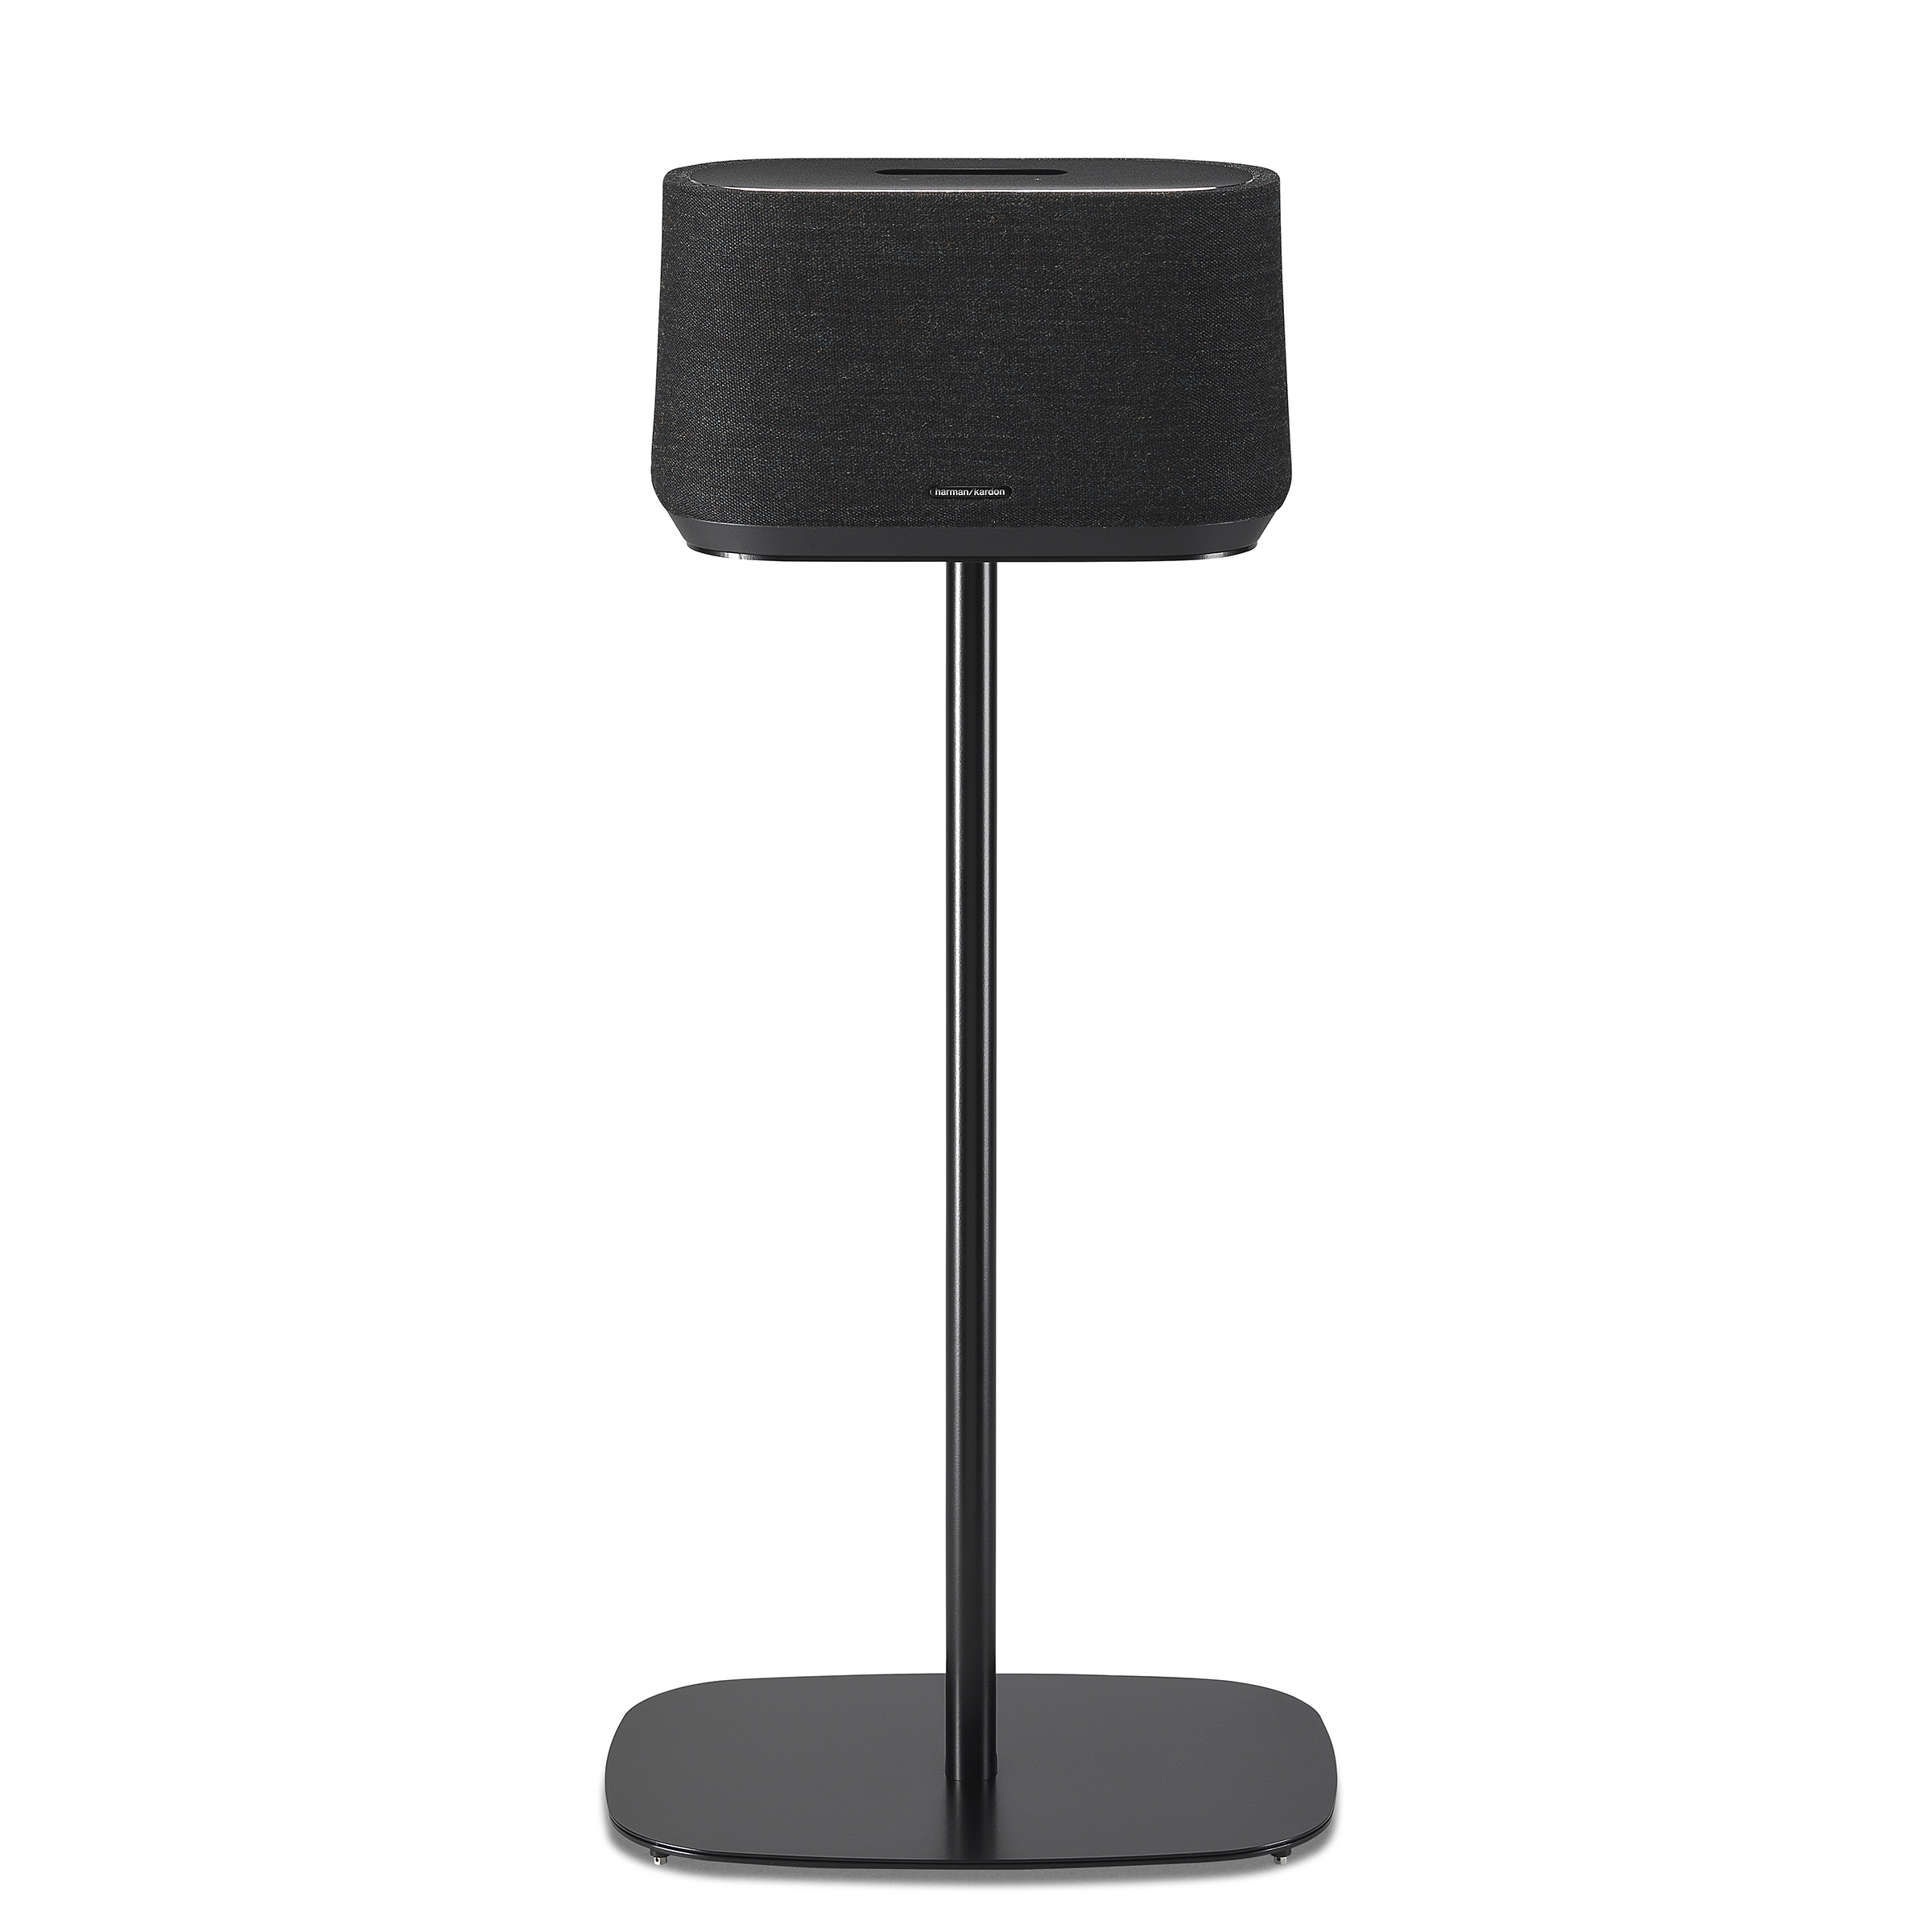 Harman Kardon Citation 300 standaard zwart 9